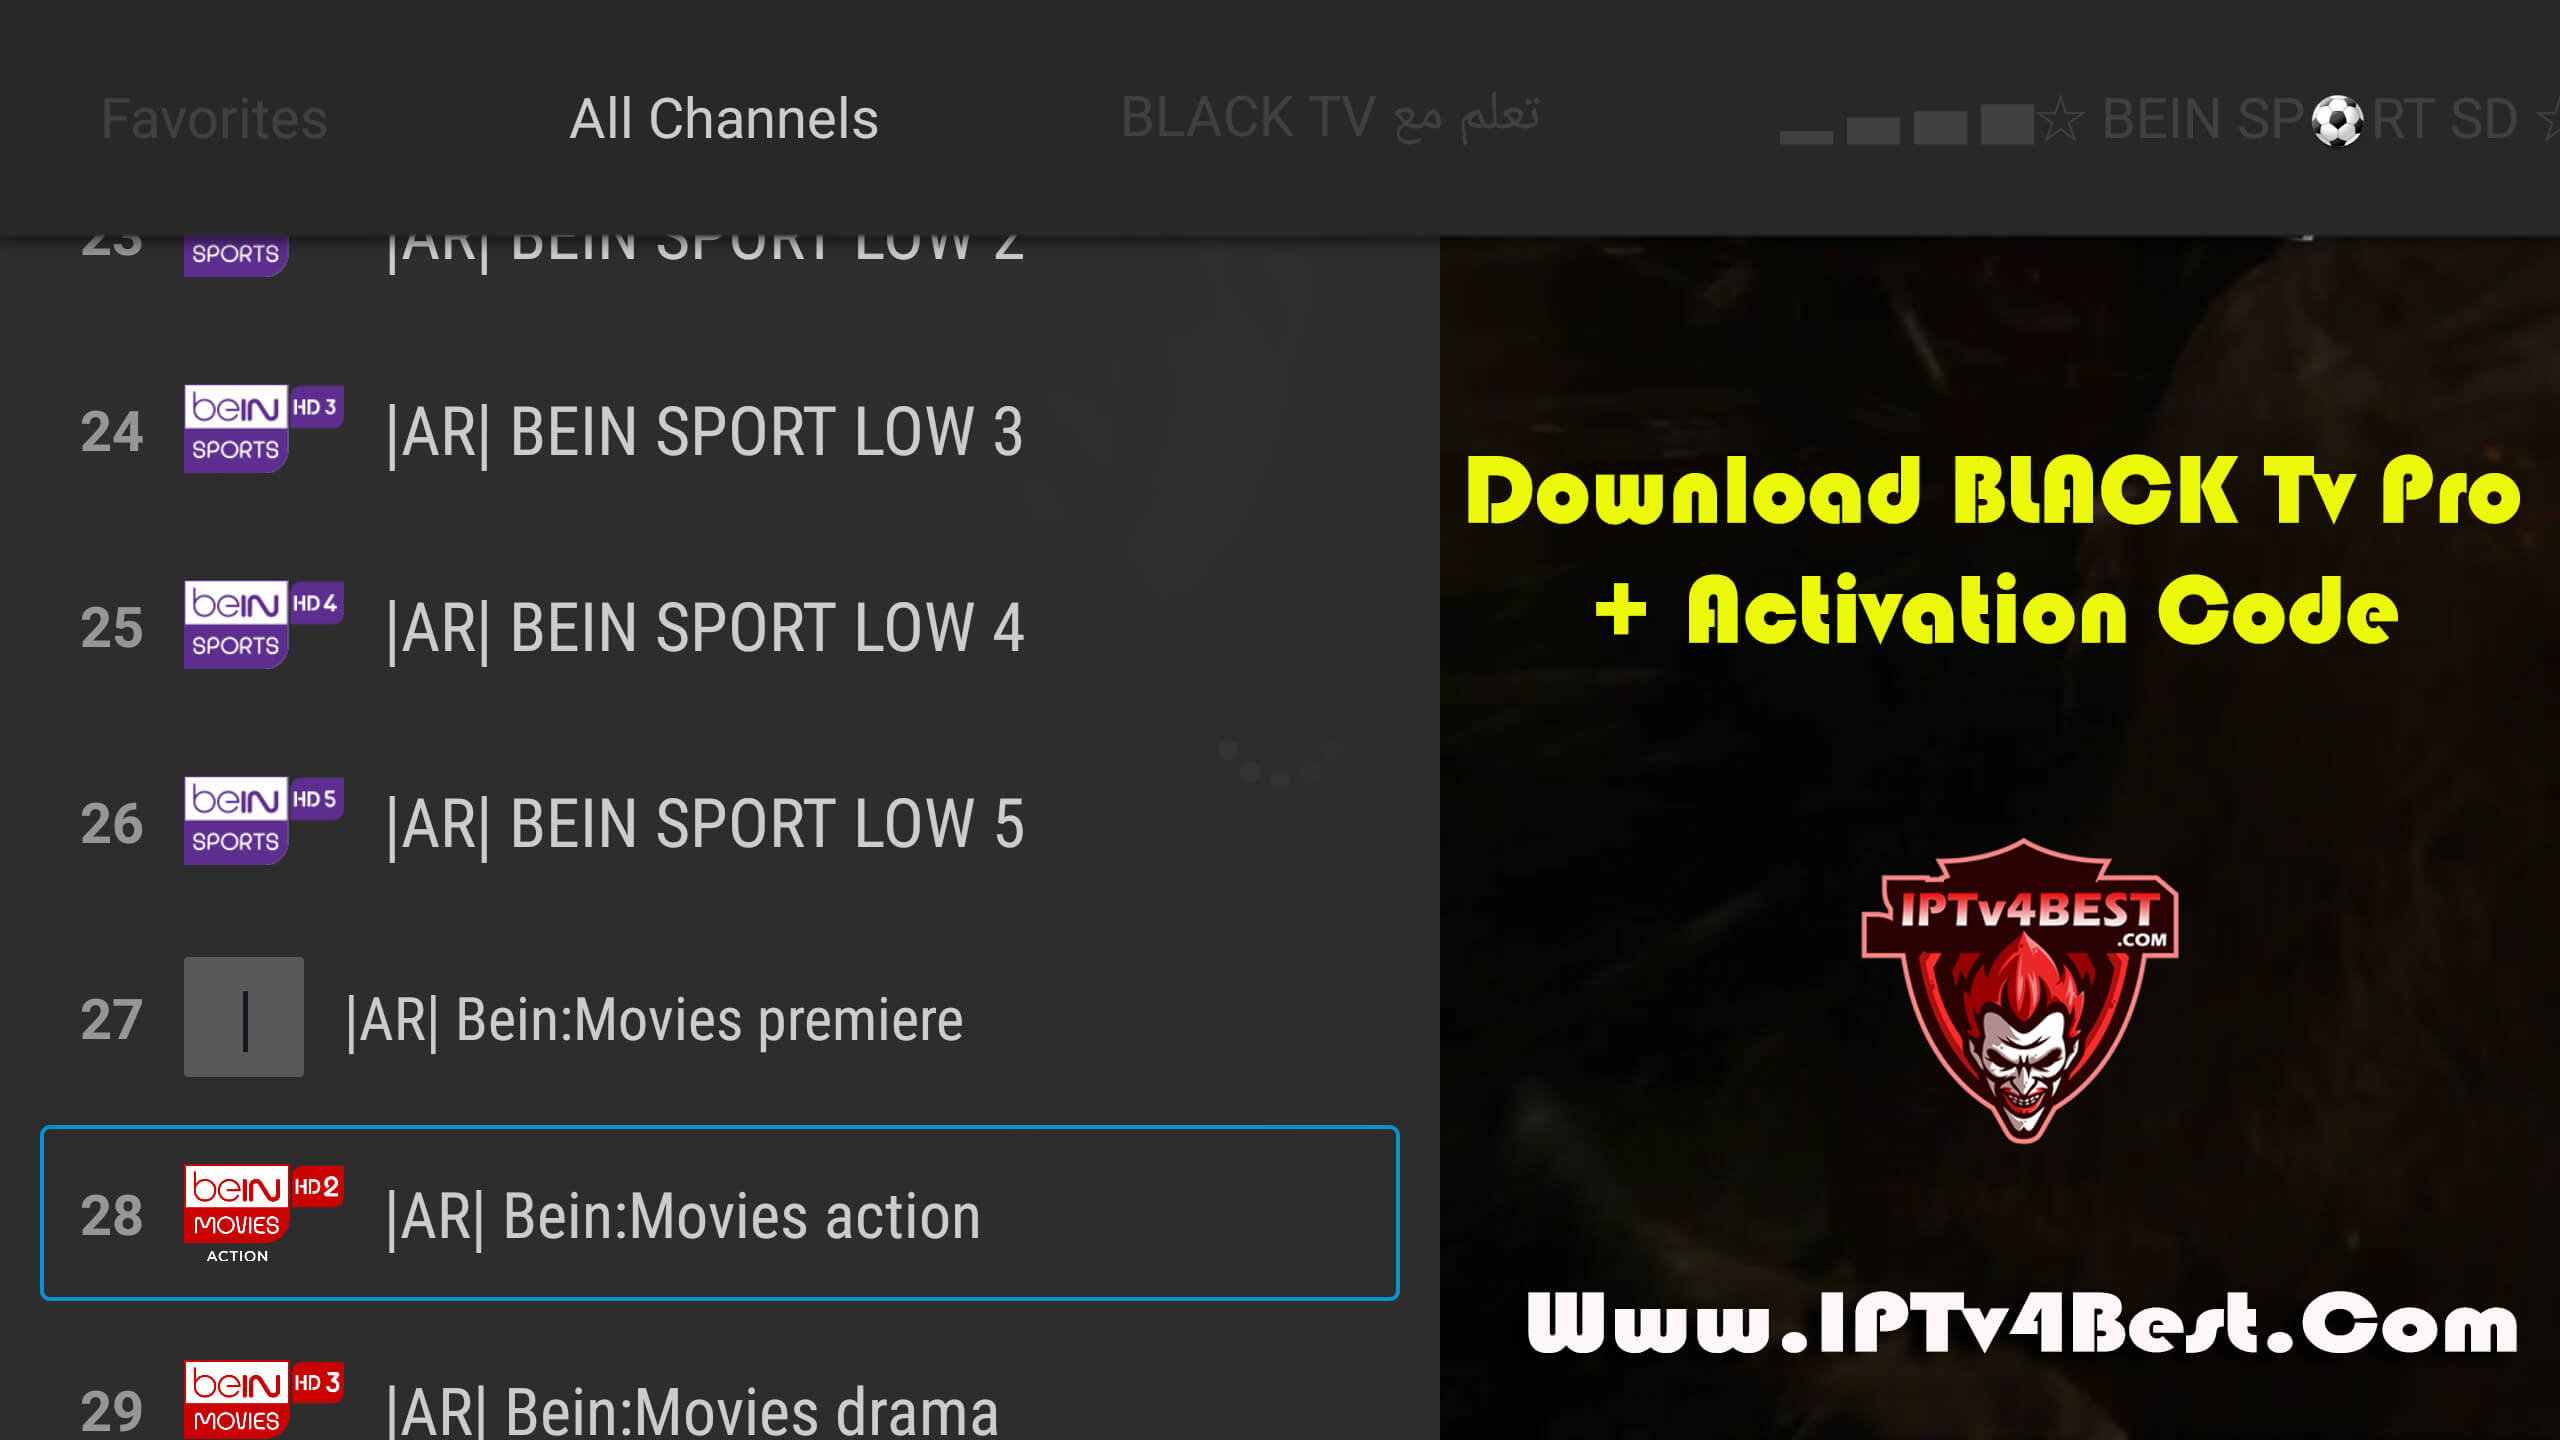 Download BLACK Tv Pro Activation Code By IPTV4BEST.COM